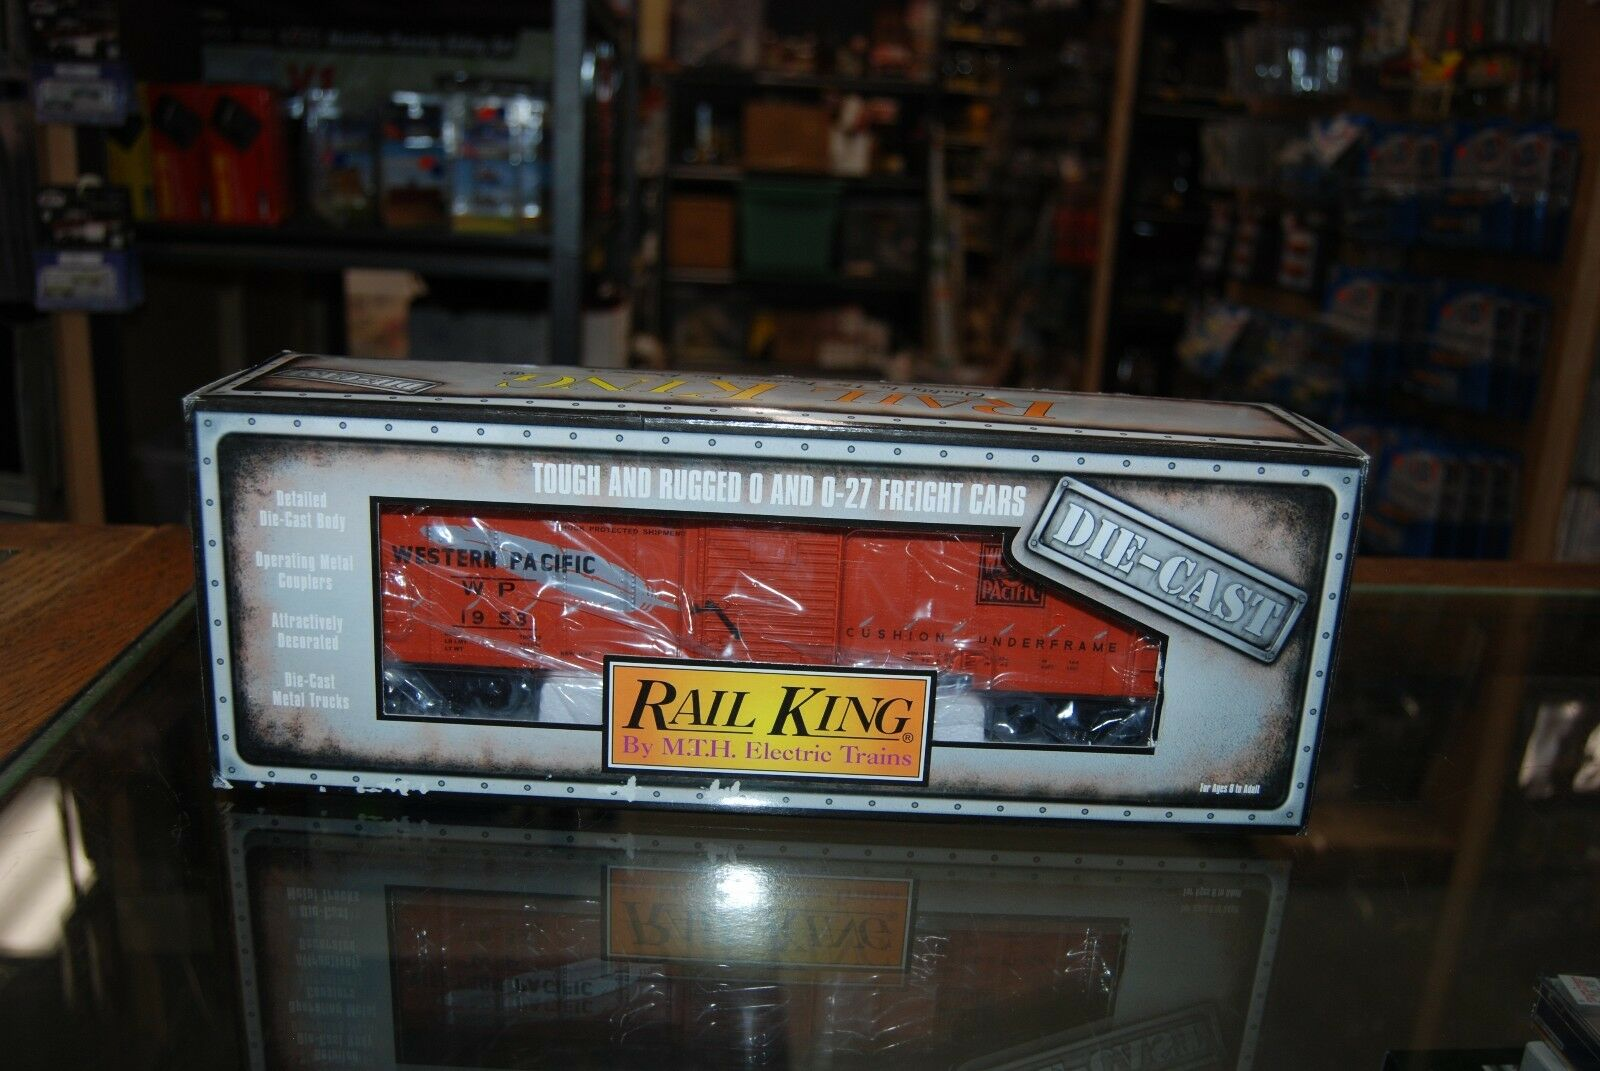 Lot 7-487  0 Gauge  Rail King Diecast 30-8402  Western Pacific Box Car  w Bo